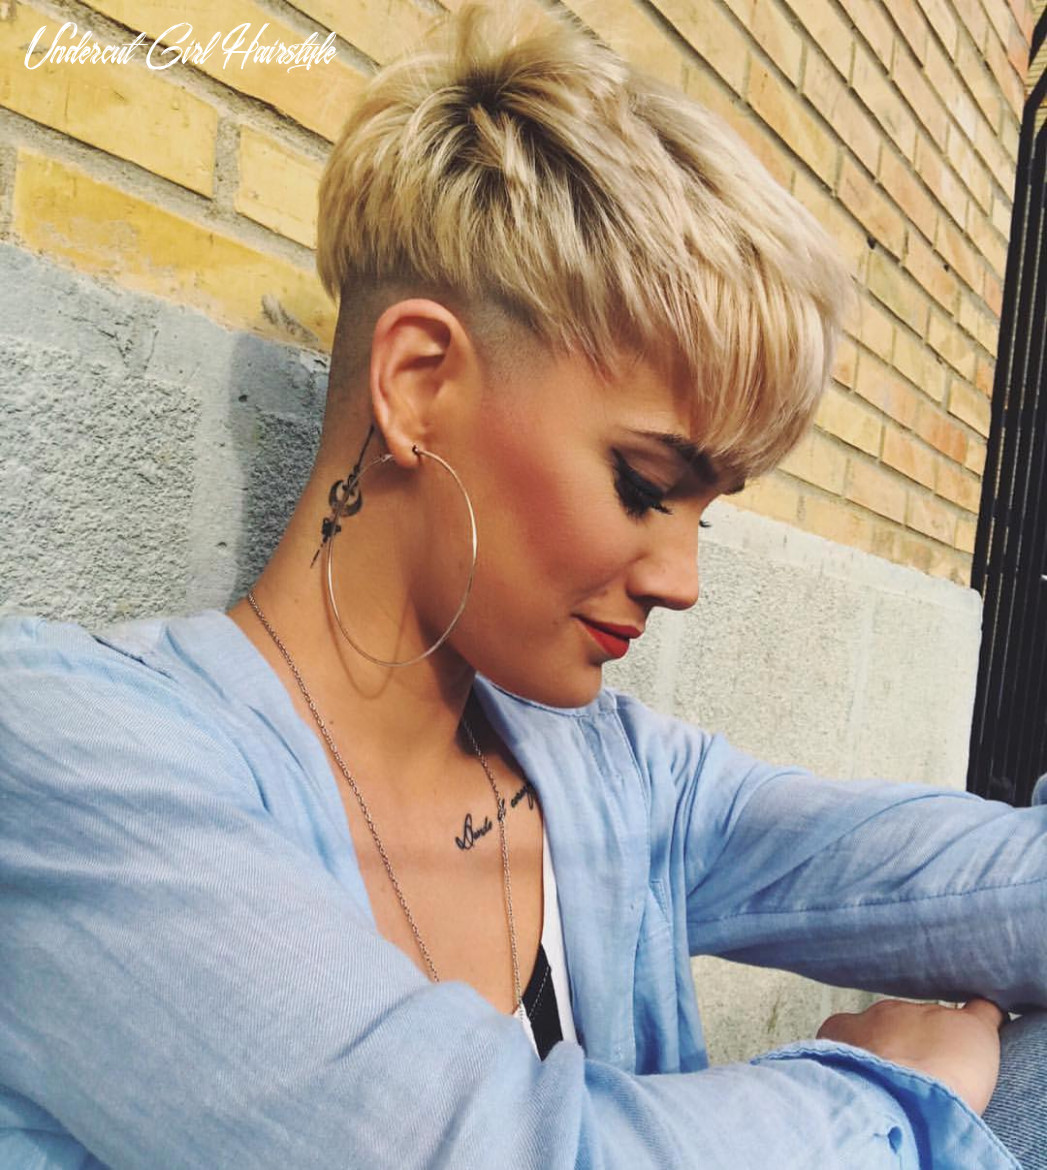 12 stylish pixie haircuts women short undercut hairstyles 12 undercut girl hairstyle